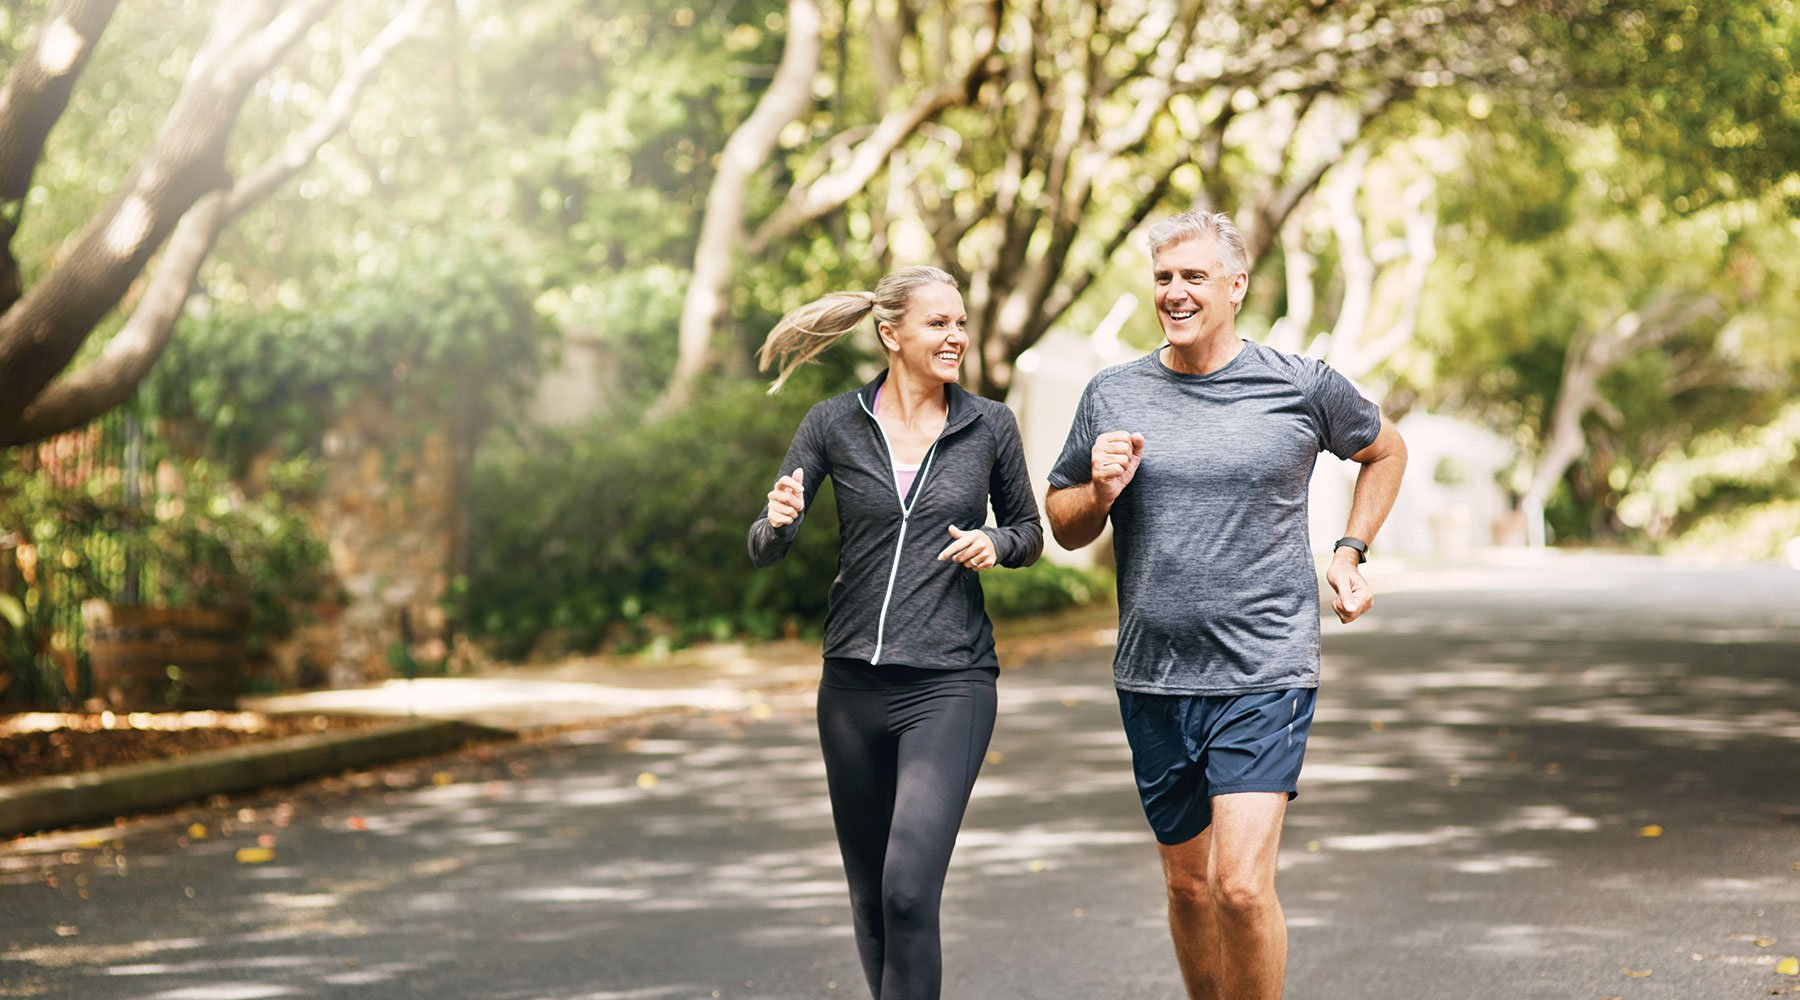 A middle-aged couple running together to maintain their physical health